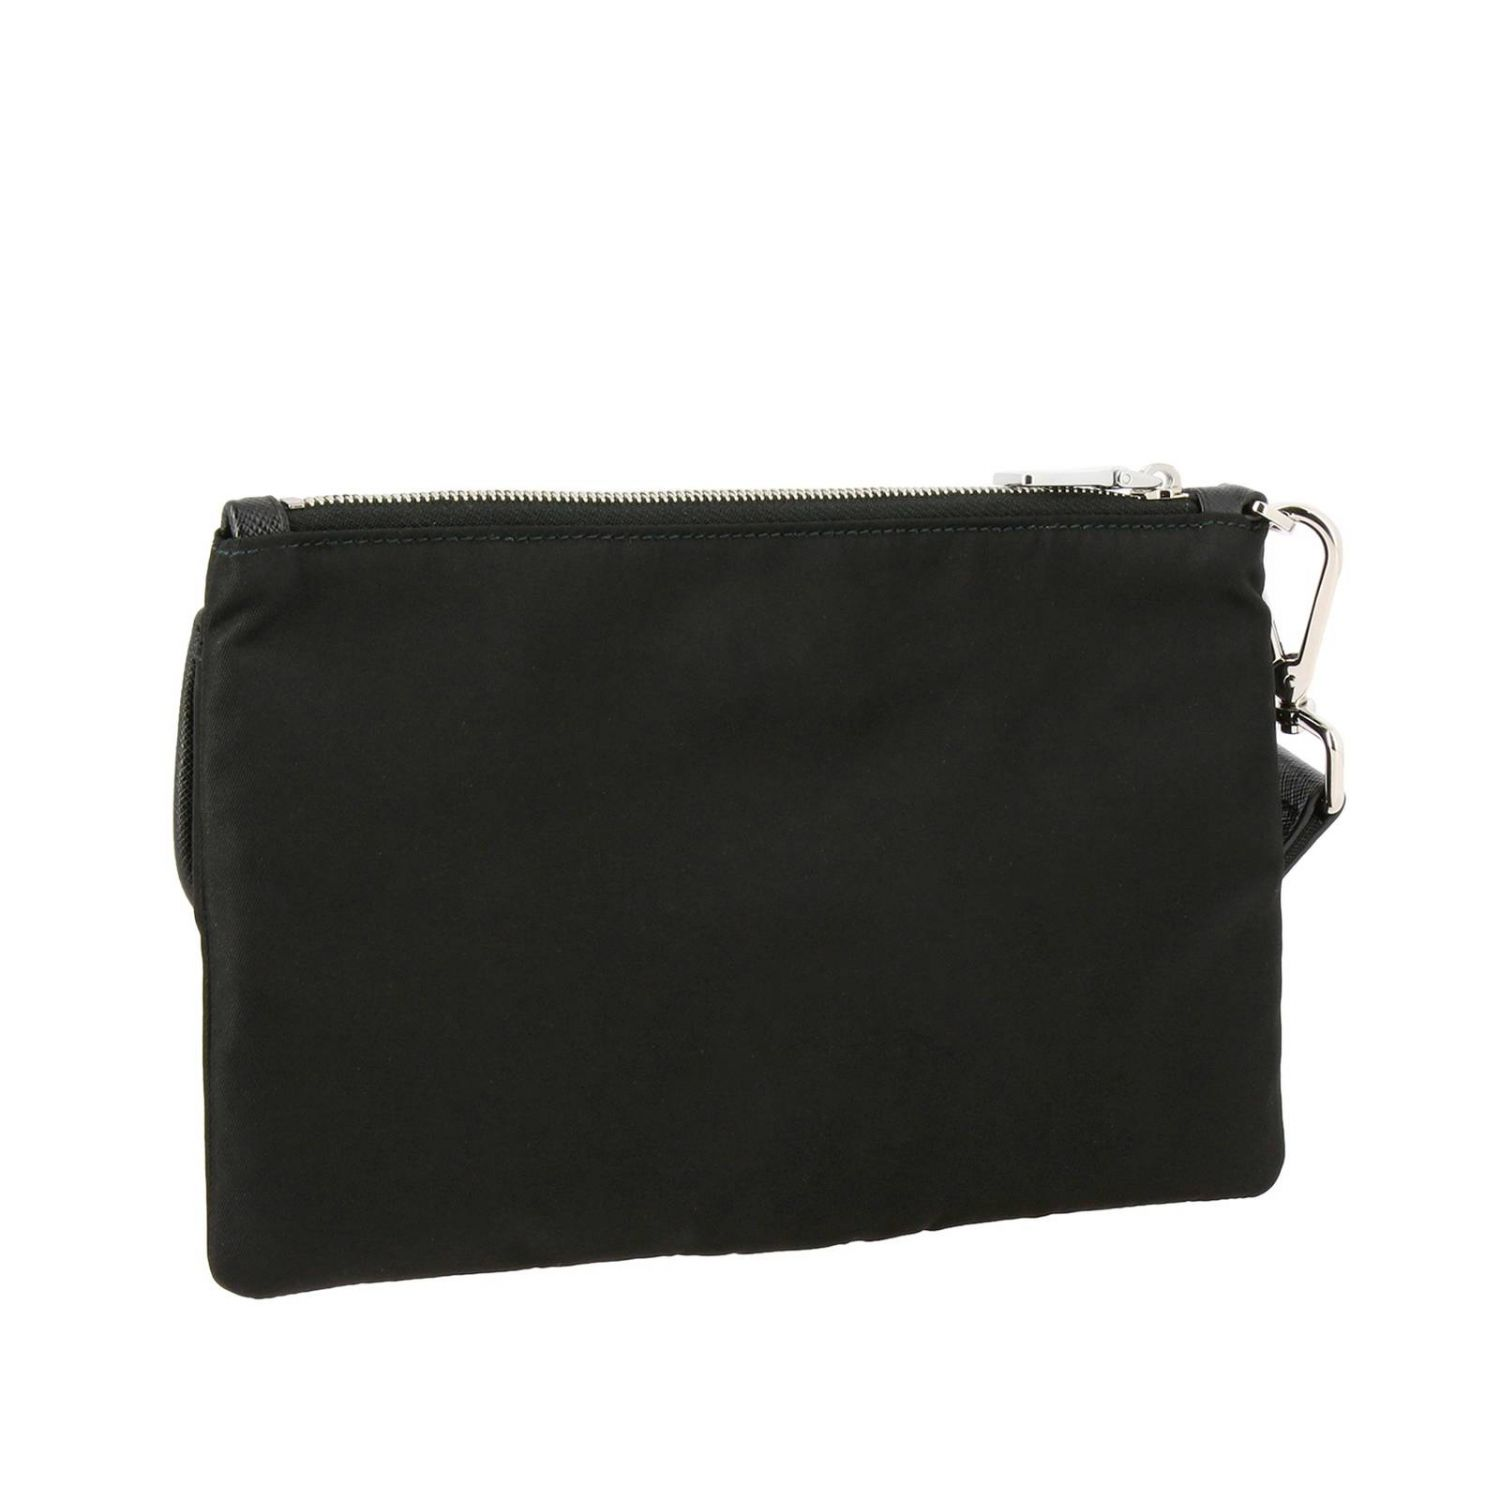 Prada nylon clutch bag with triangular logo and buckle black 3